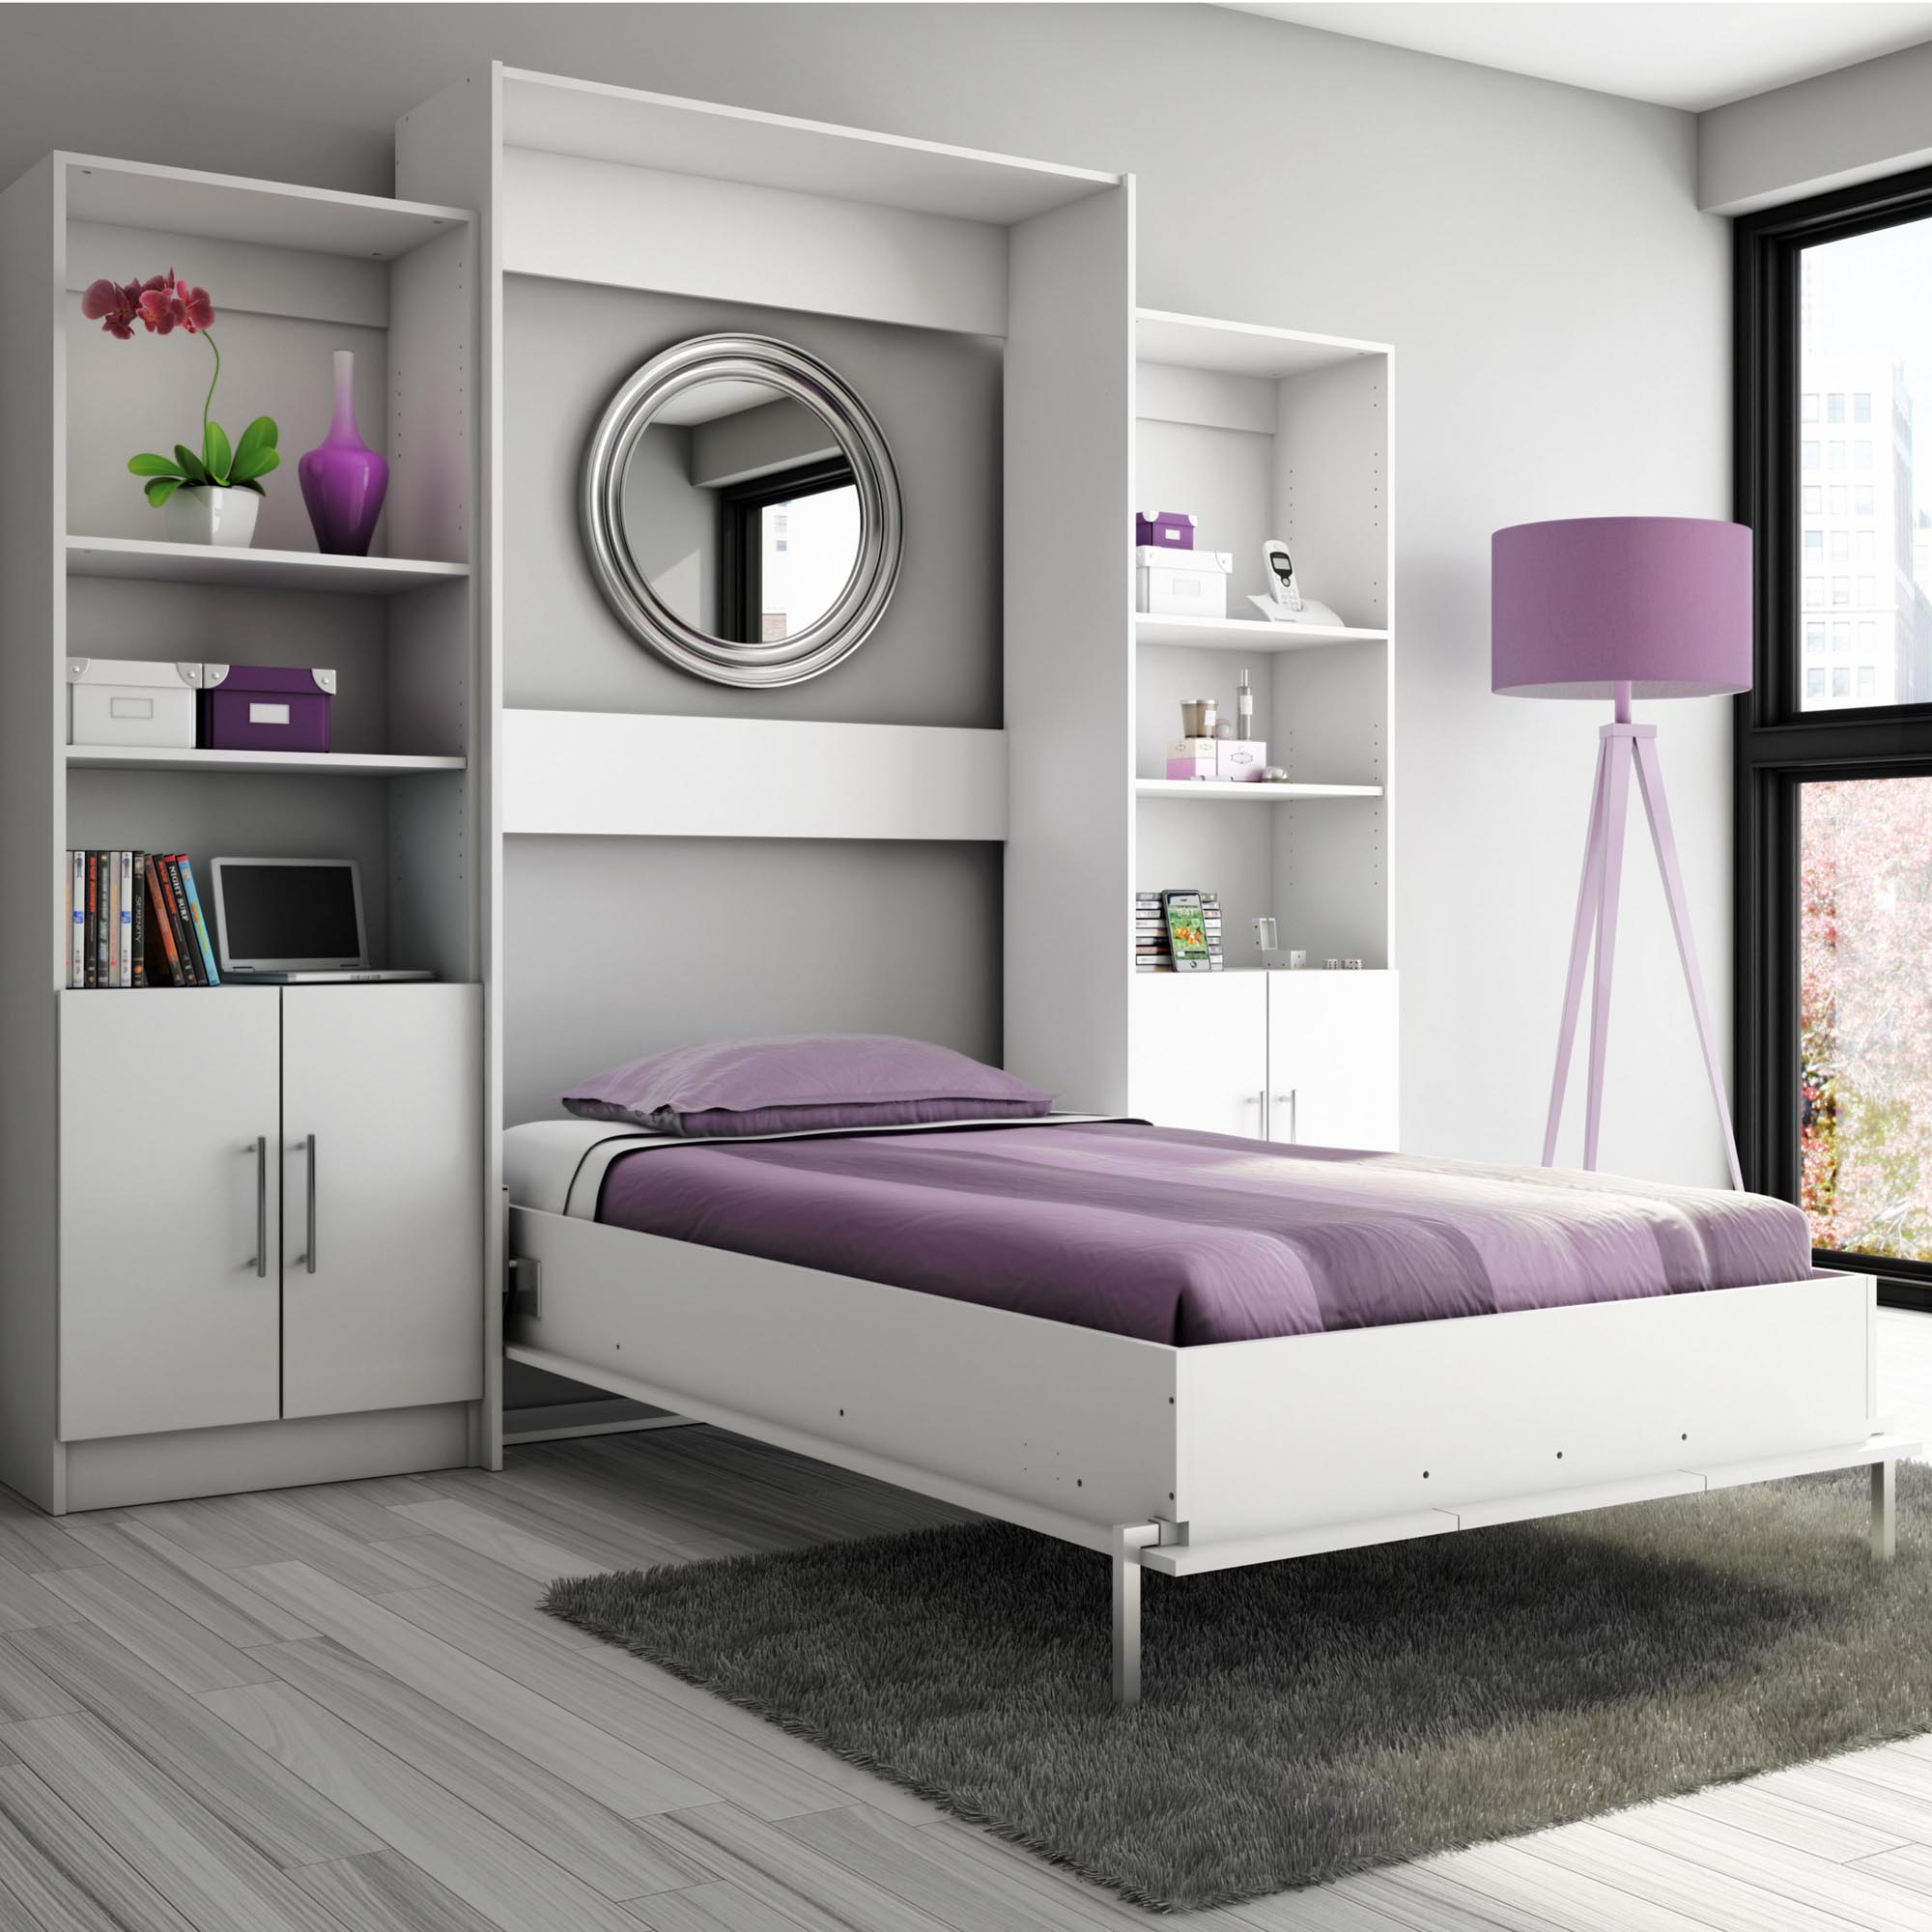 Marvelous Design Of The Grey Wooden Floor Ideas Added With Grey Wall And Purple Modern Murphy Bed Ideas